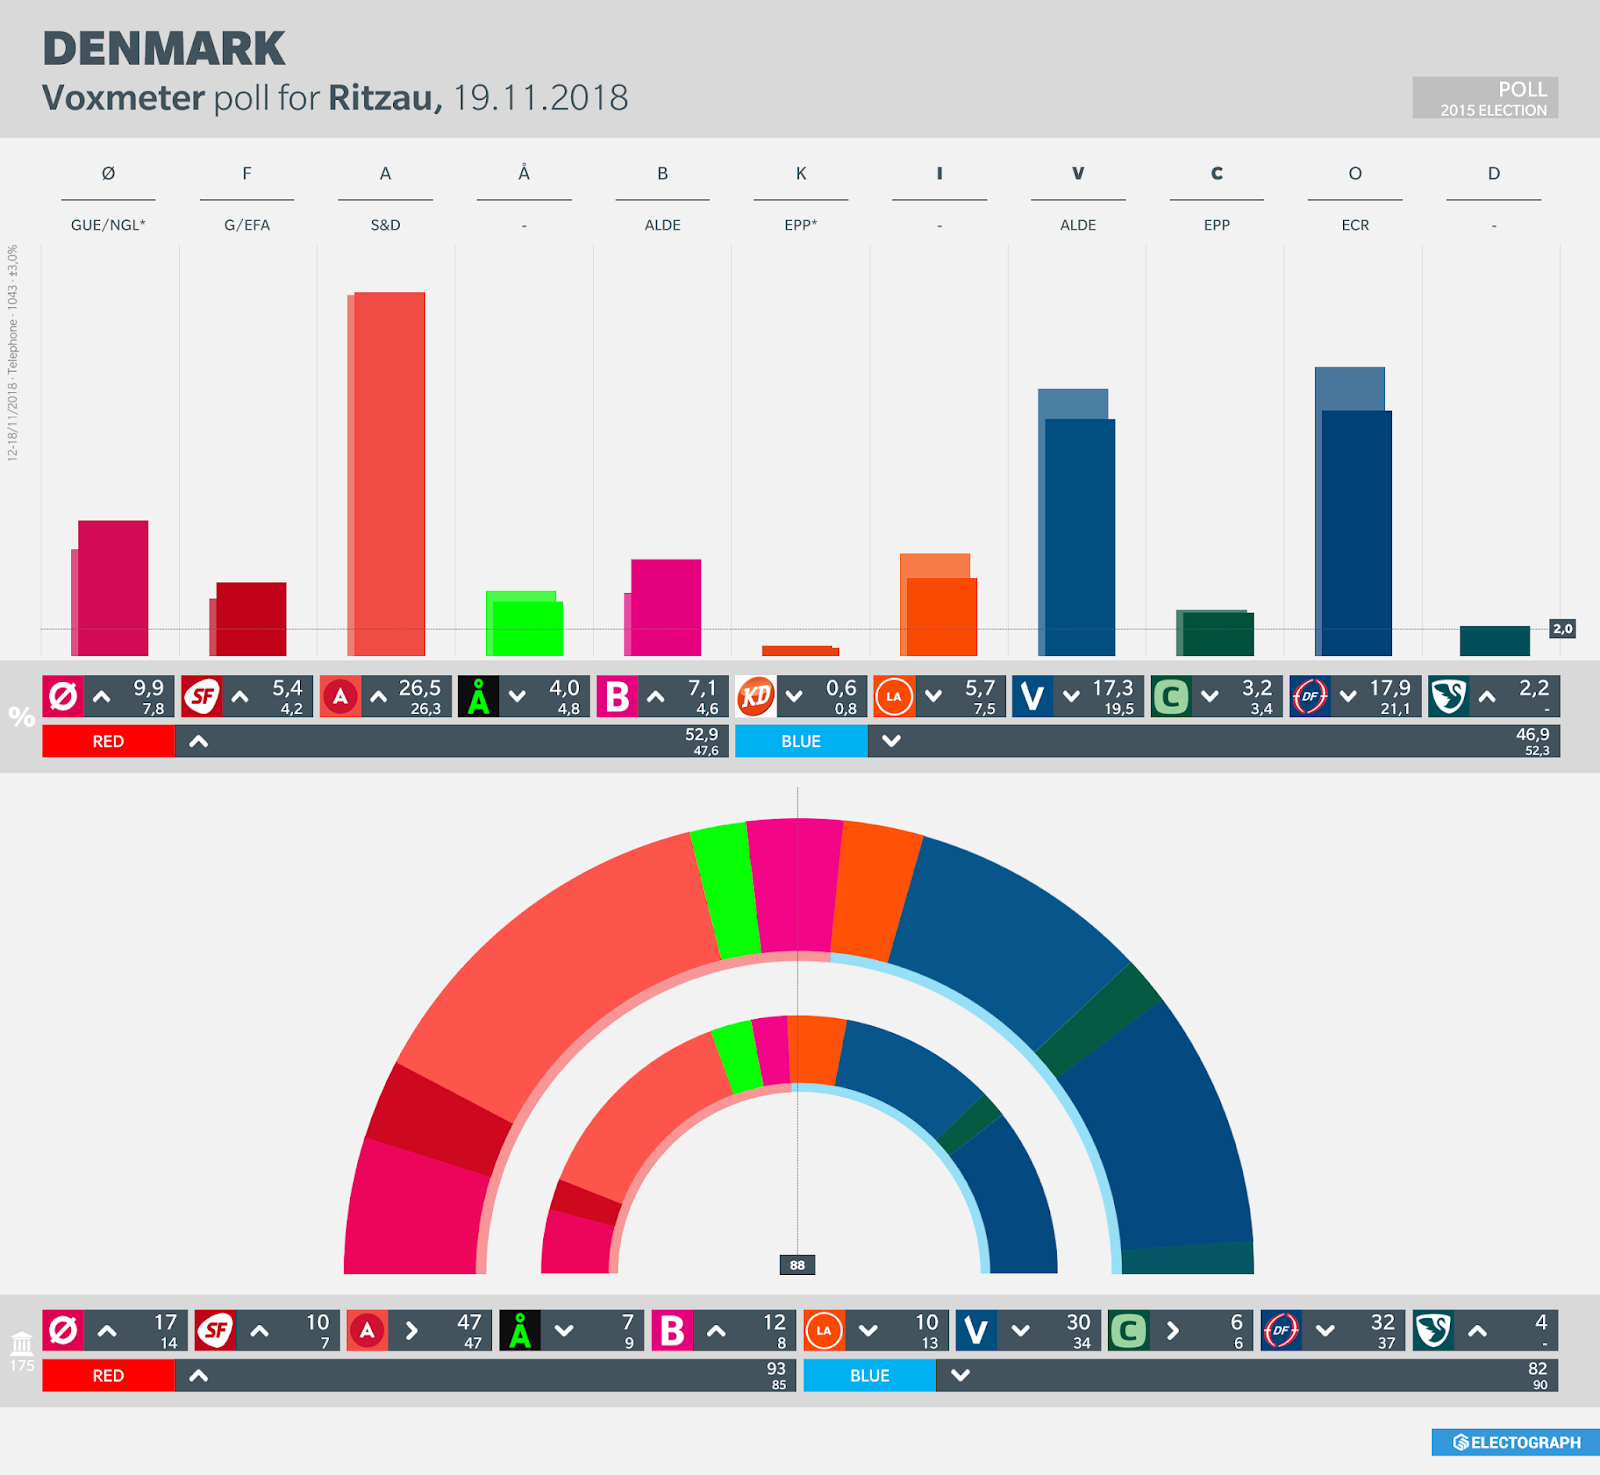 DENMARK: Voxmeter poll chart for Ritzau, November 2018